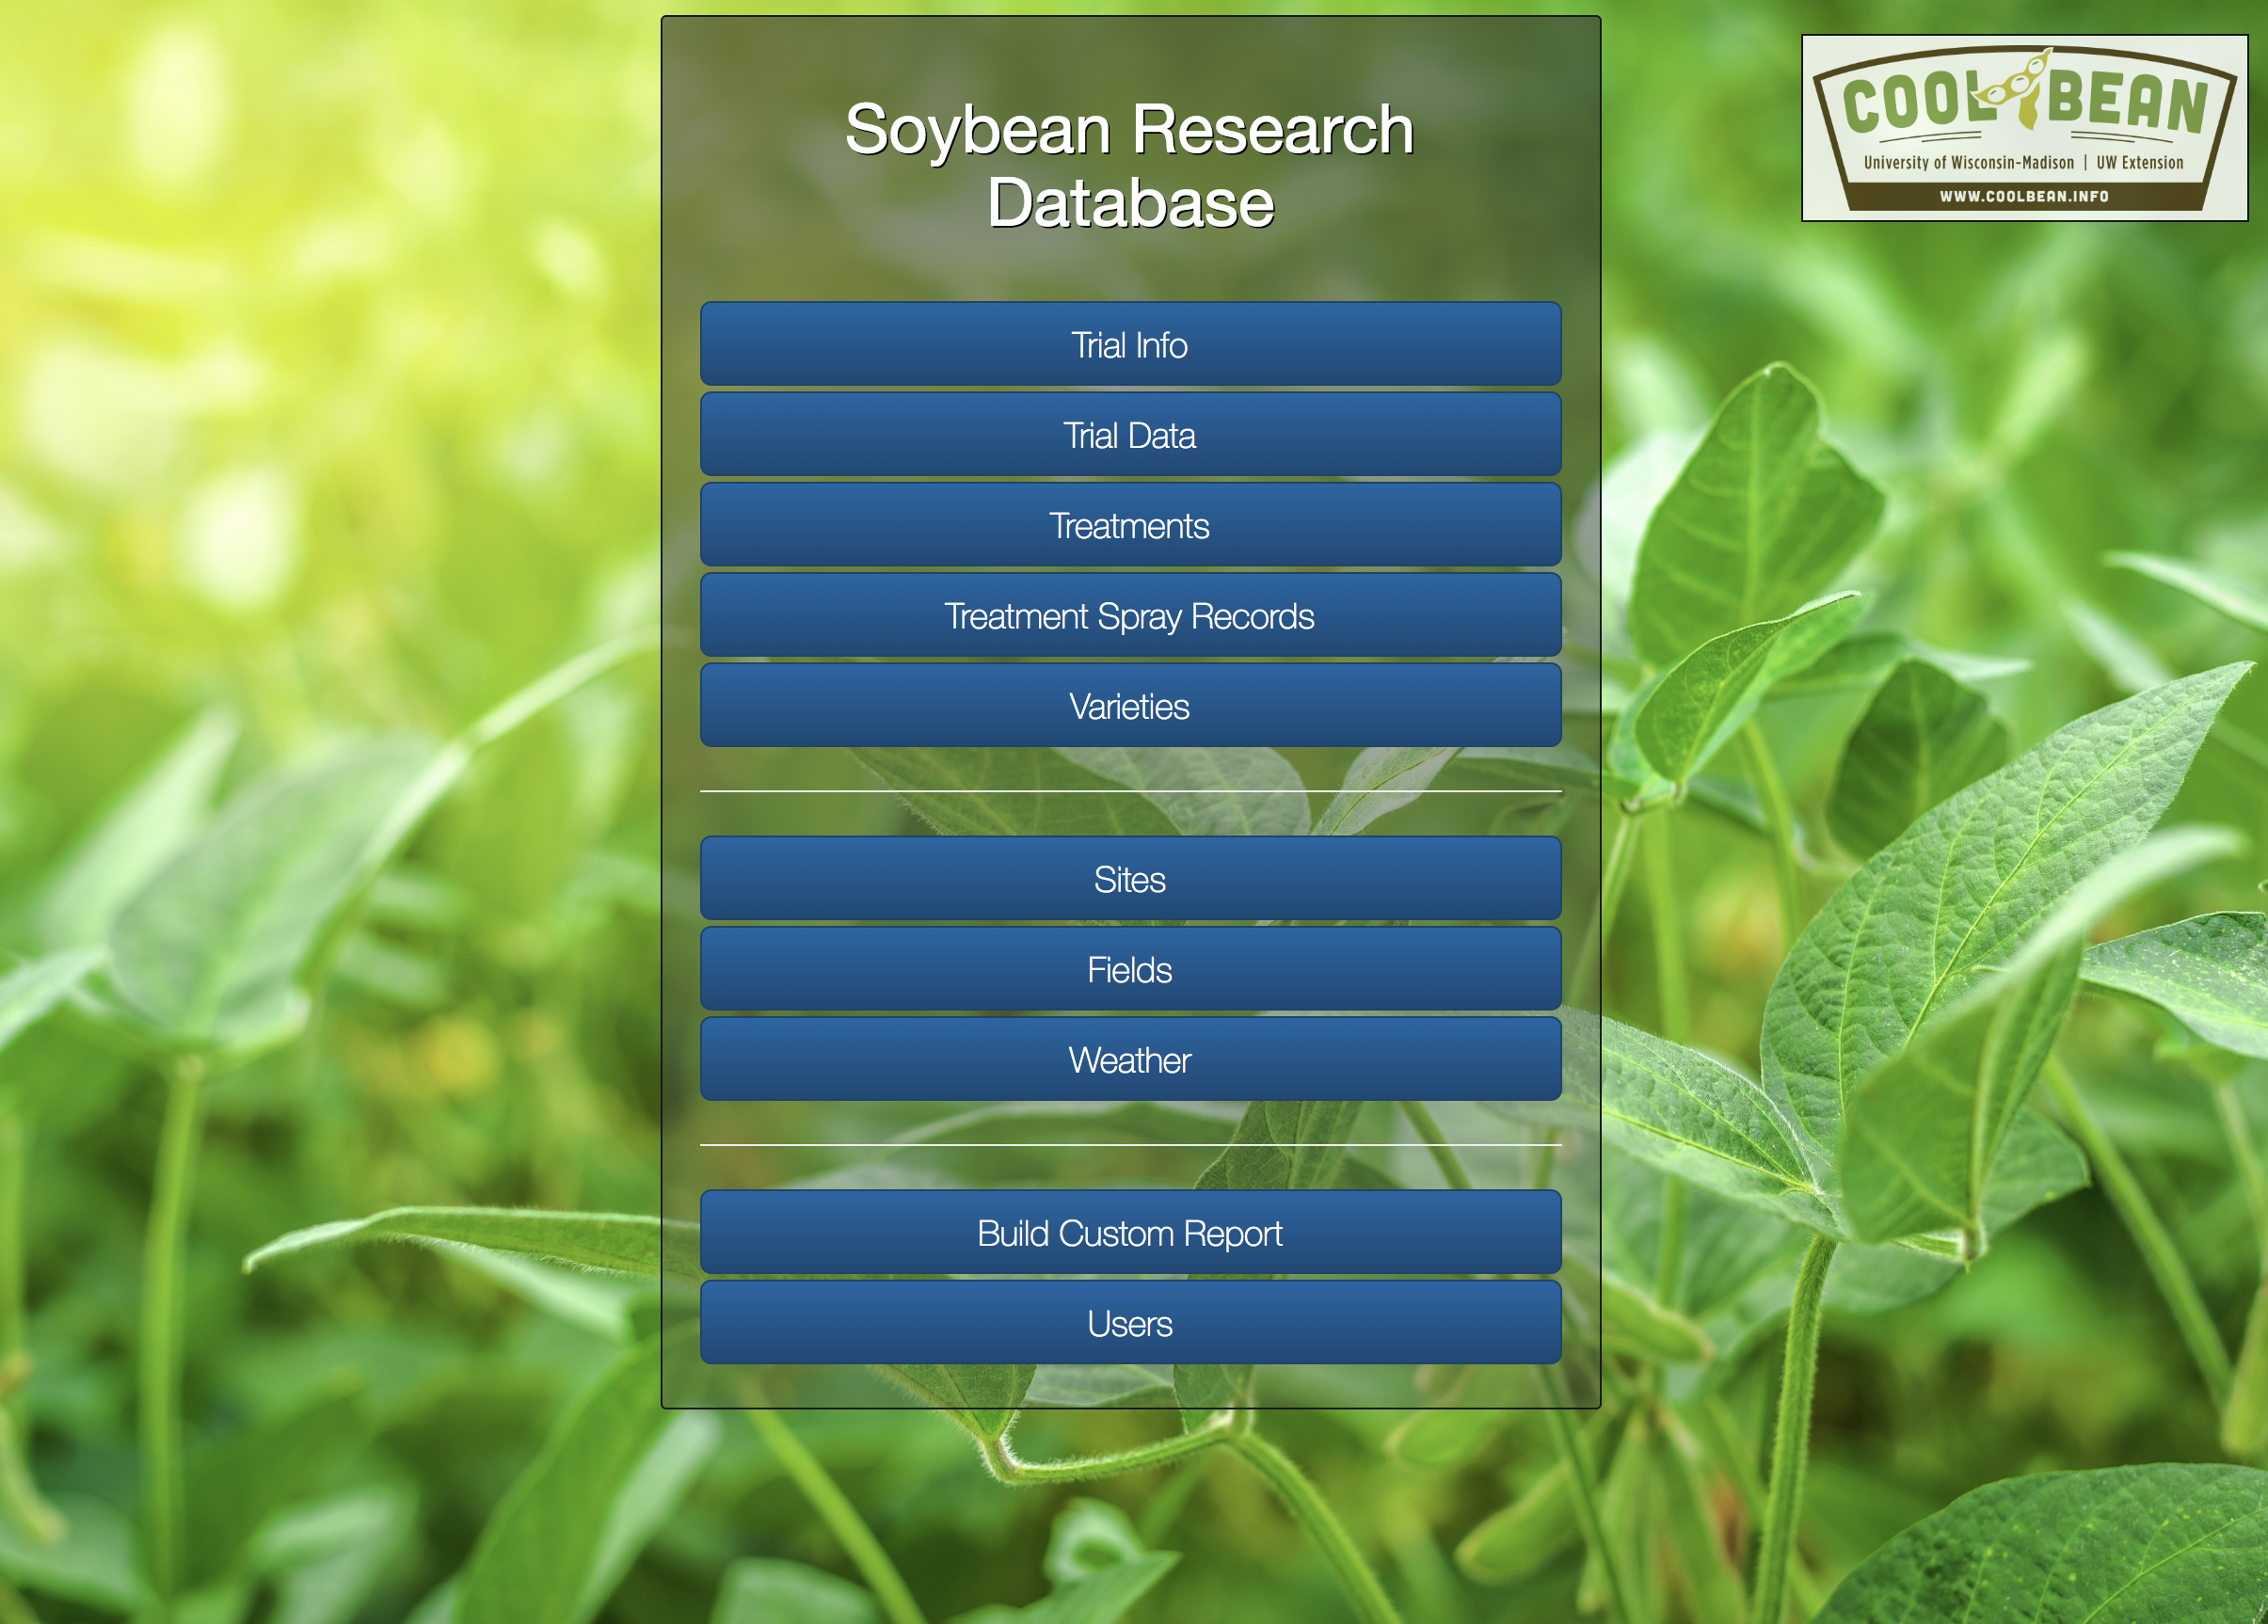 Soybean Research Database